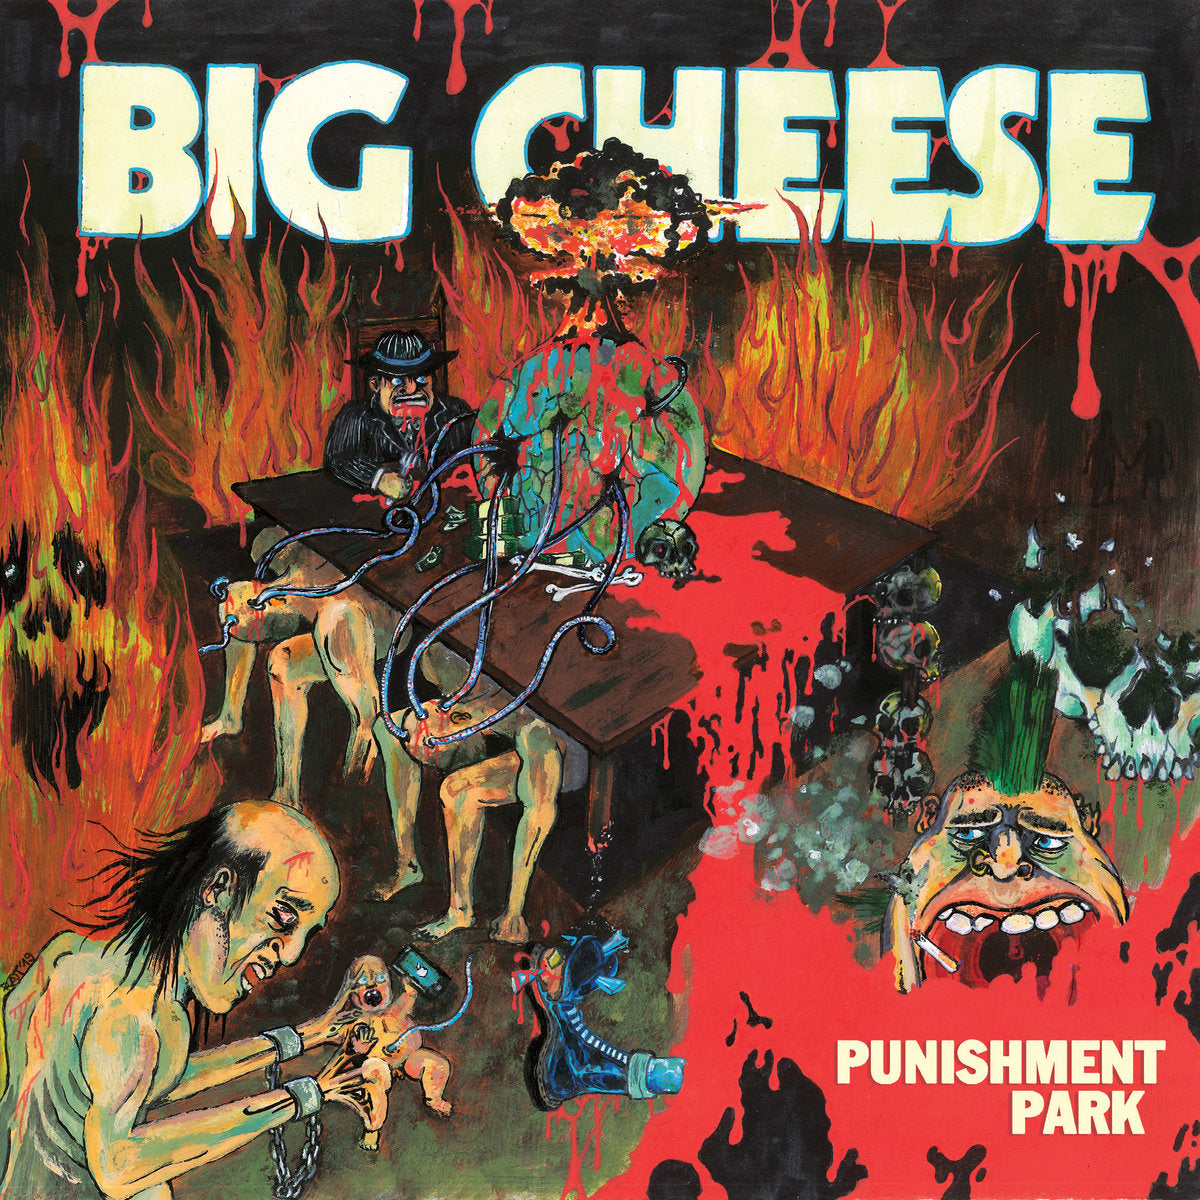 BIG CHEESE 'Punishment Park' LP / RED EDITION